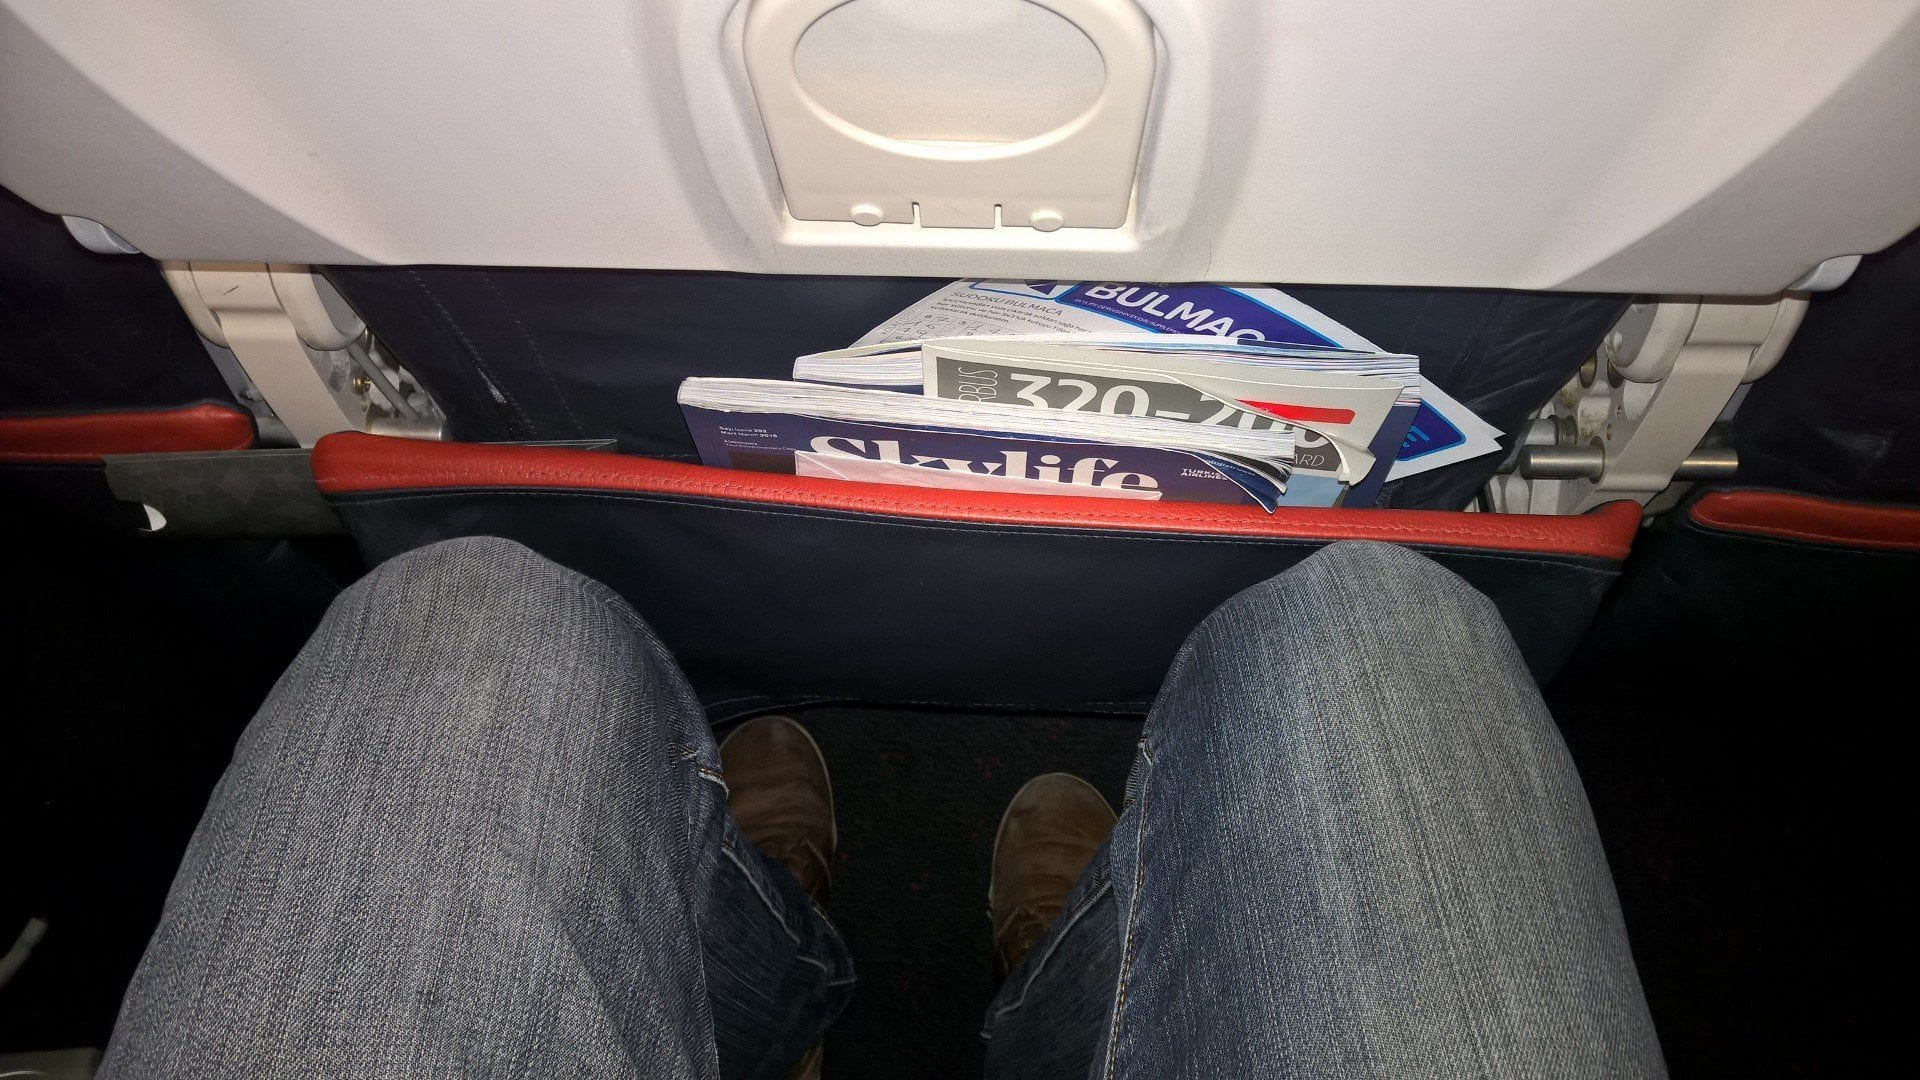 Turksih Airlines Economy Class Sitzabstand